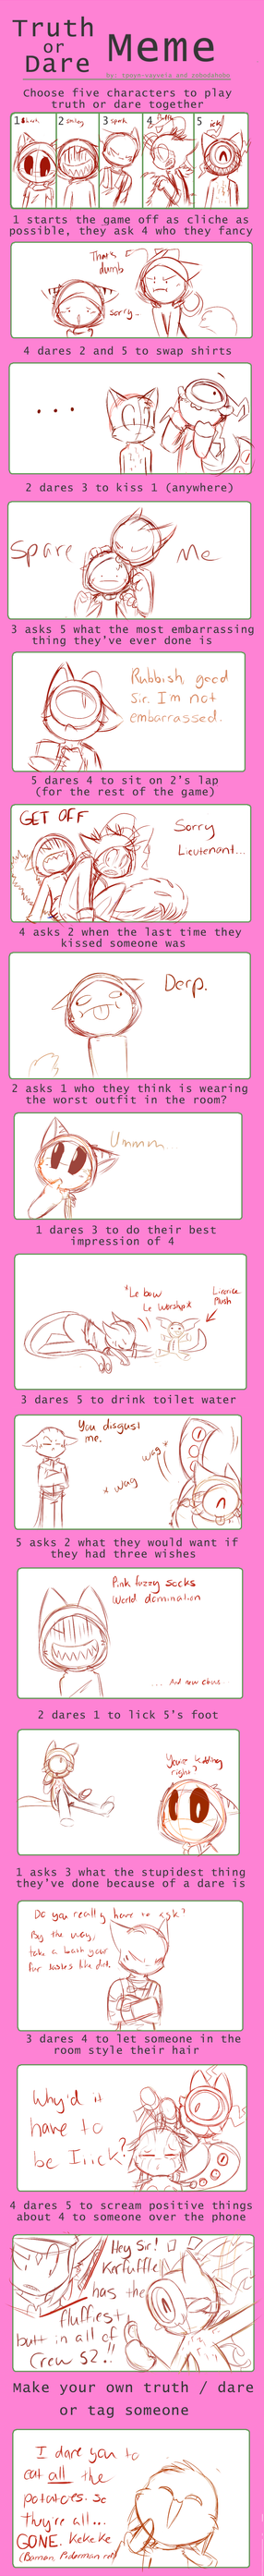 Truth Or Dare Meme Thing by SmilehKitteh